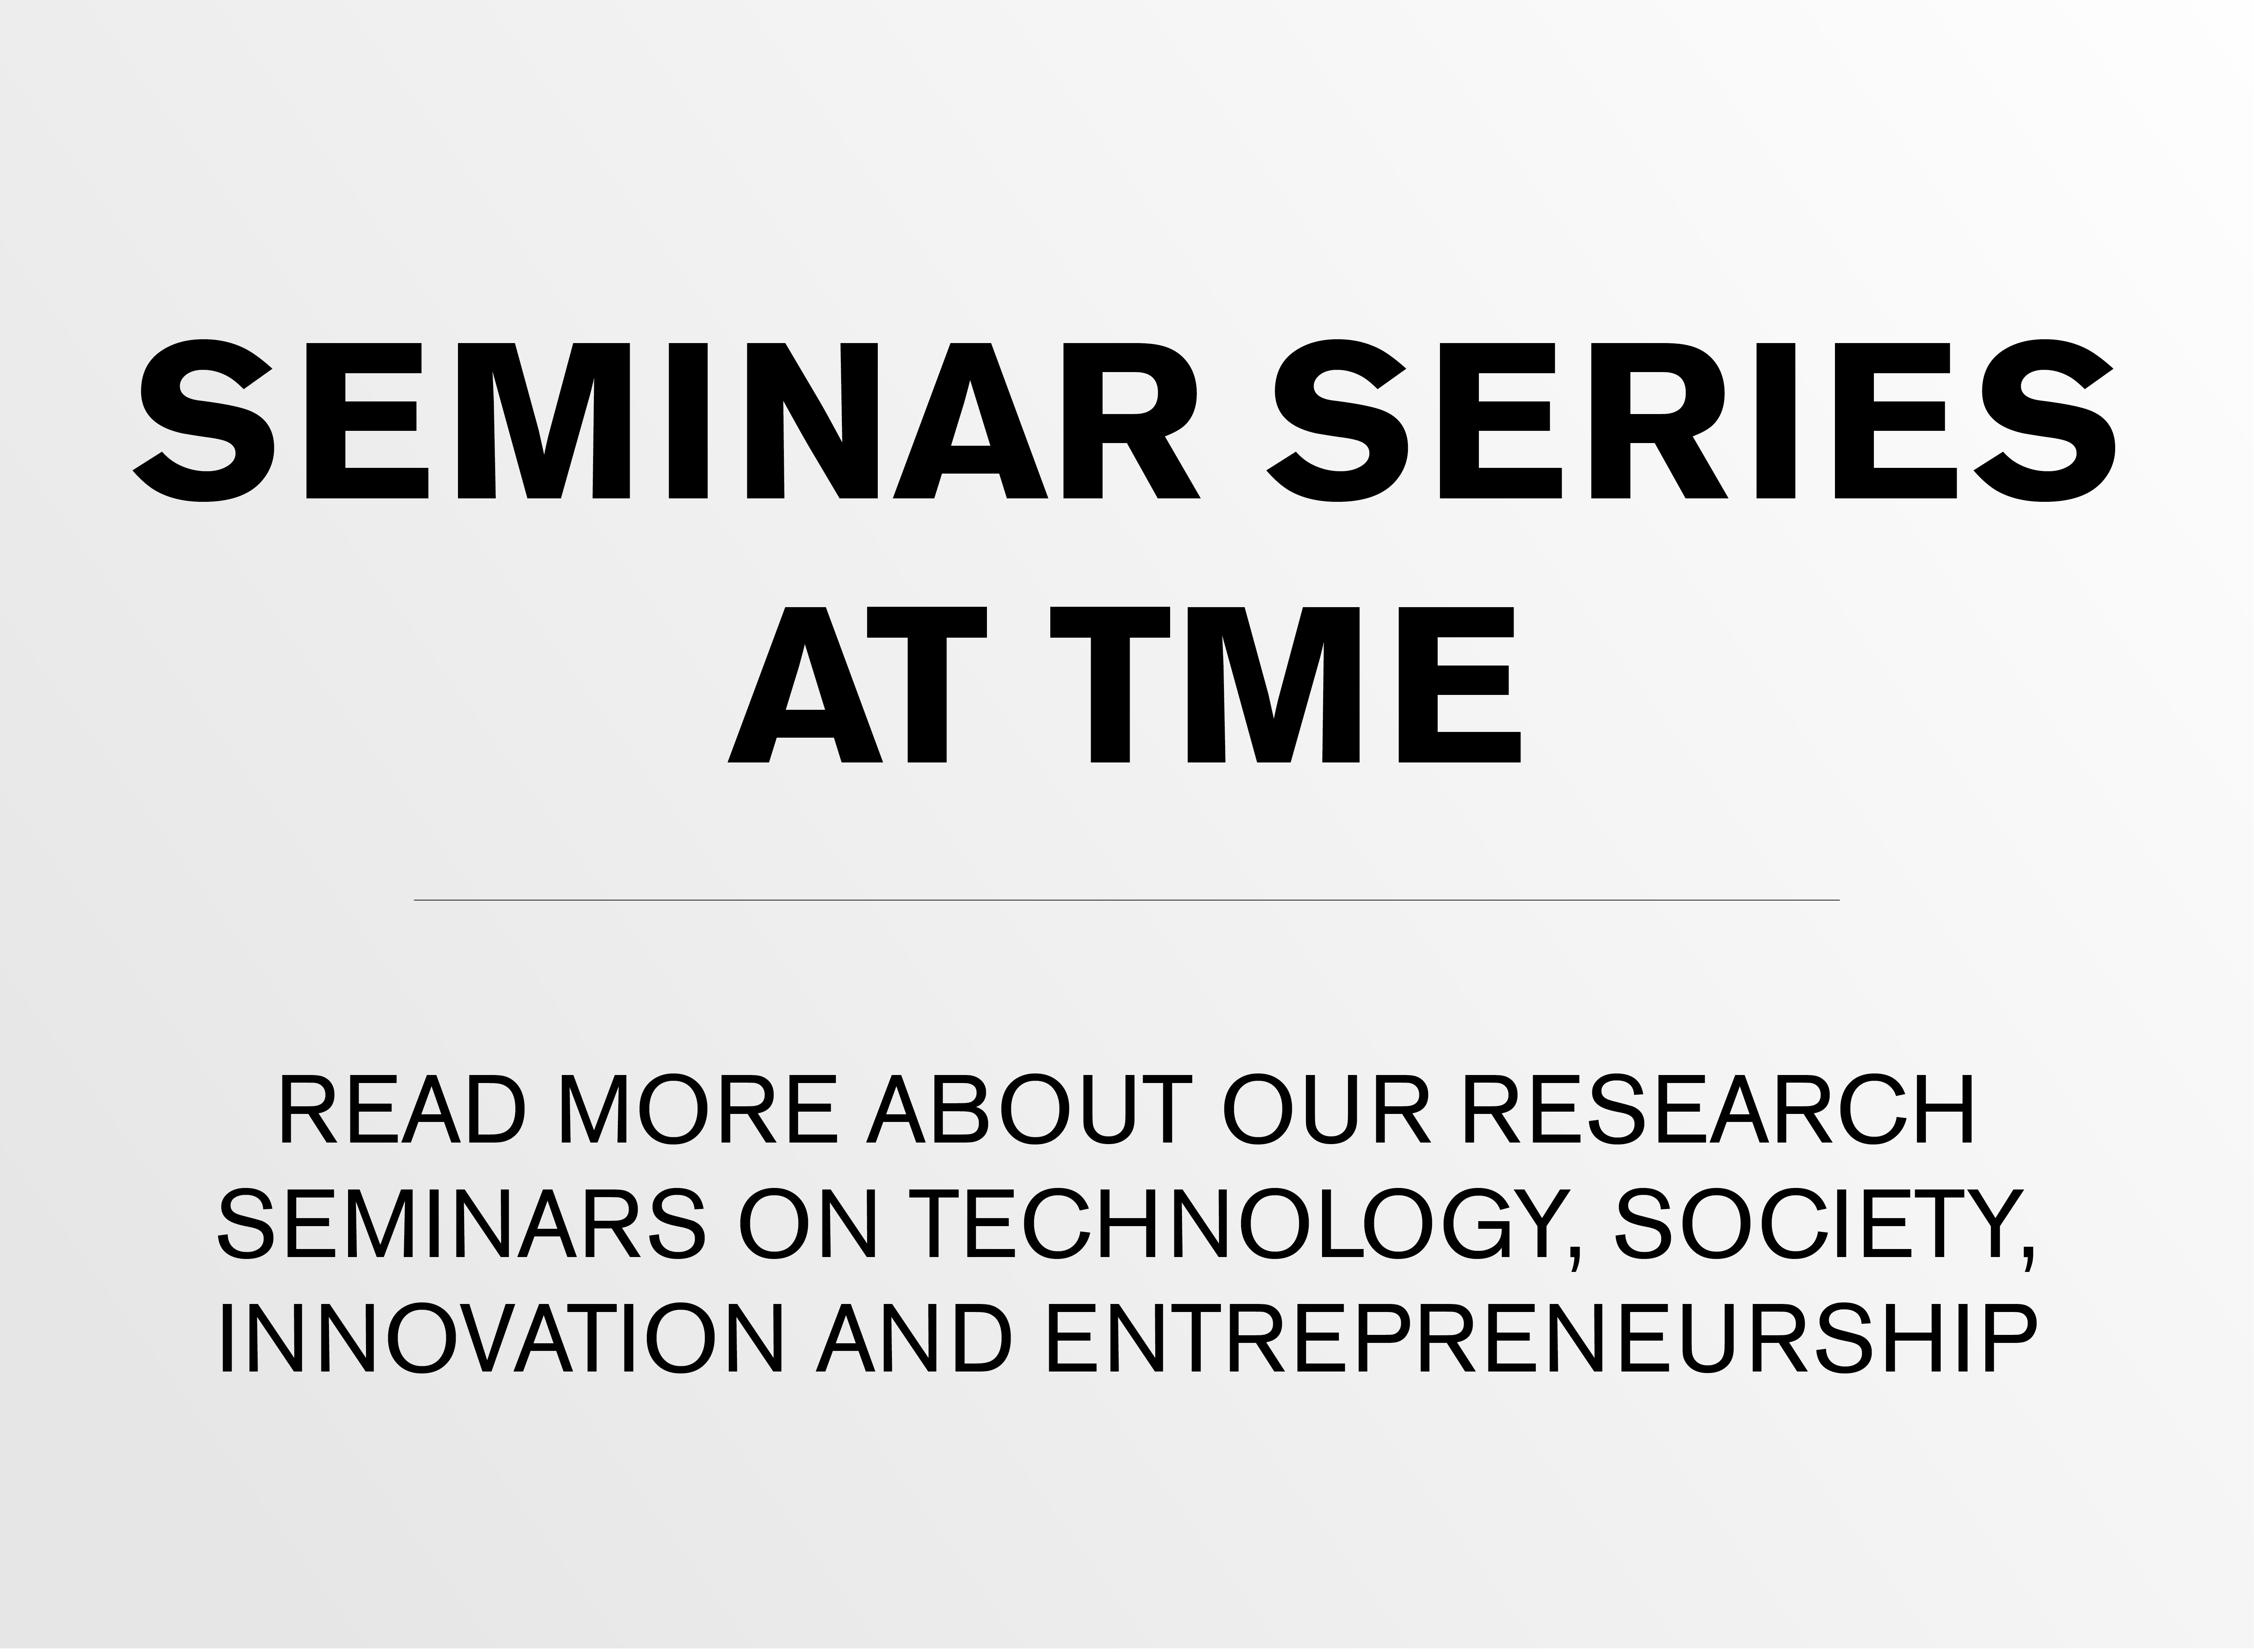 Seminar series at TME